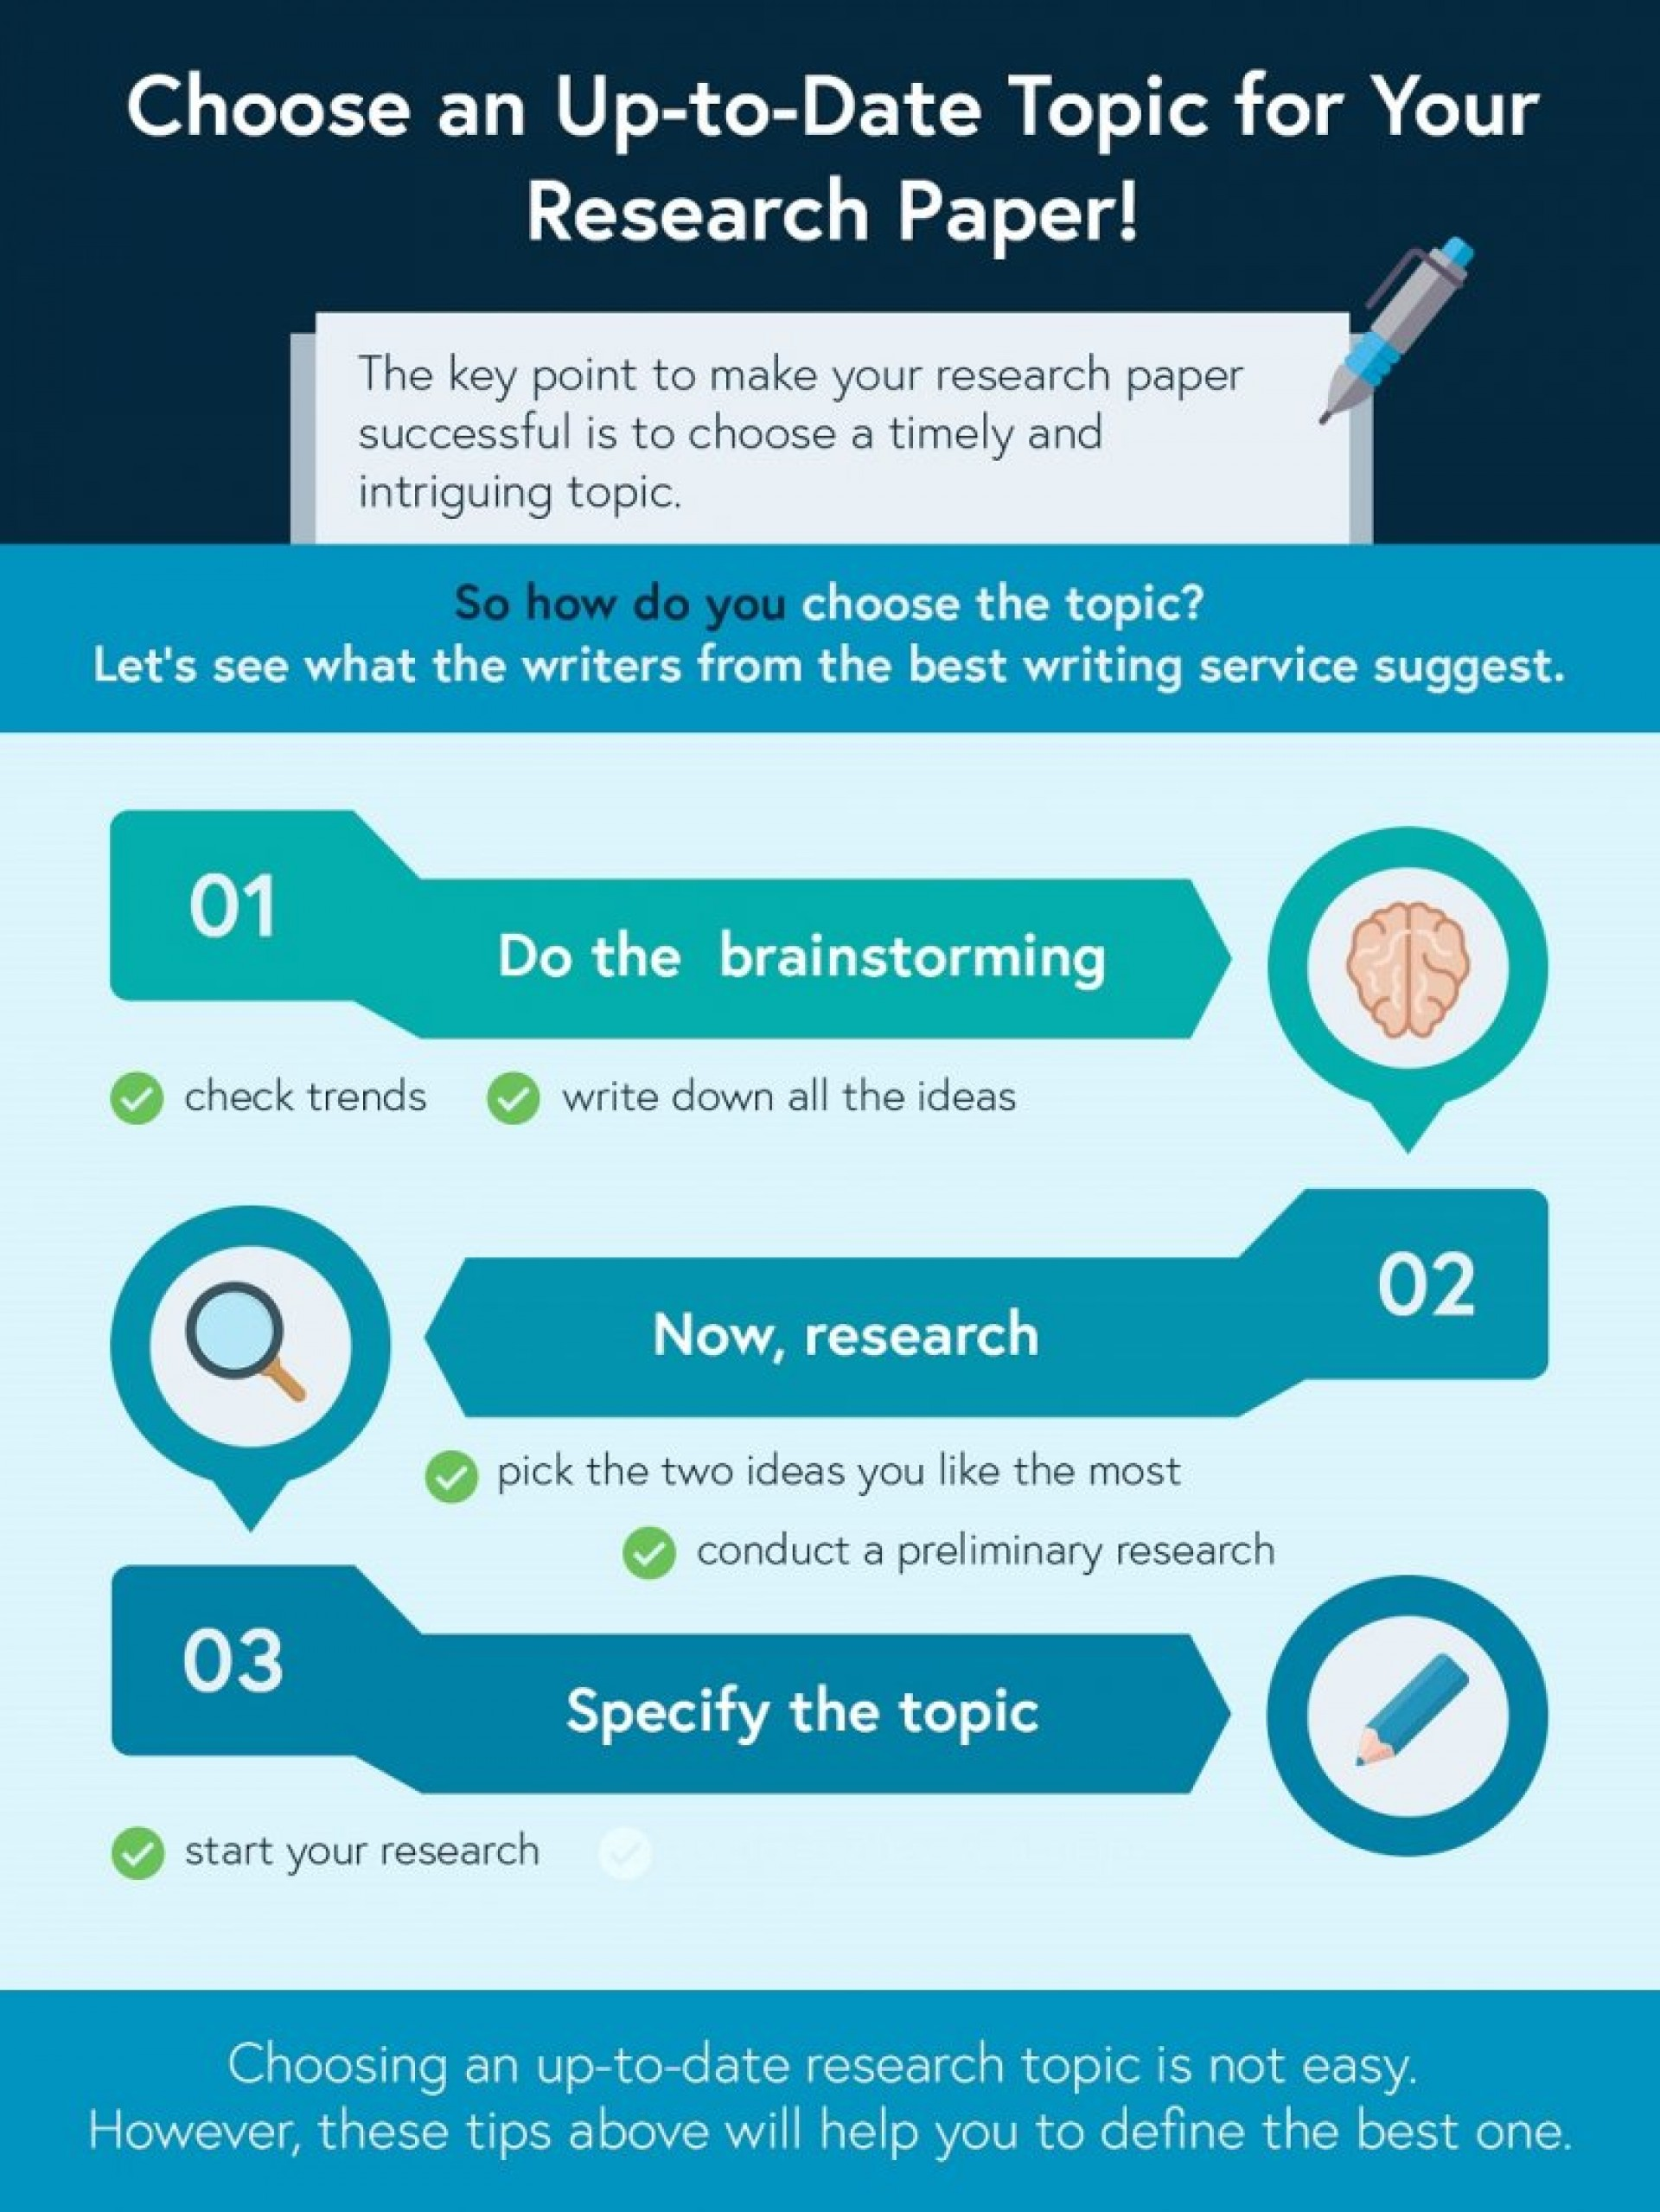 004 Infographic Research Paper Papers Writing Outstanding Service Services In Chennai Mumbai College Reviews 1920